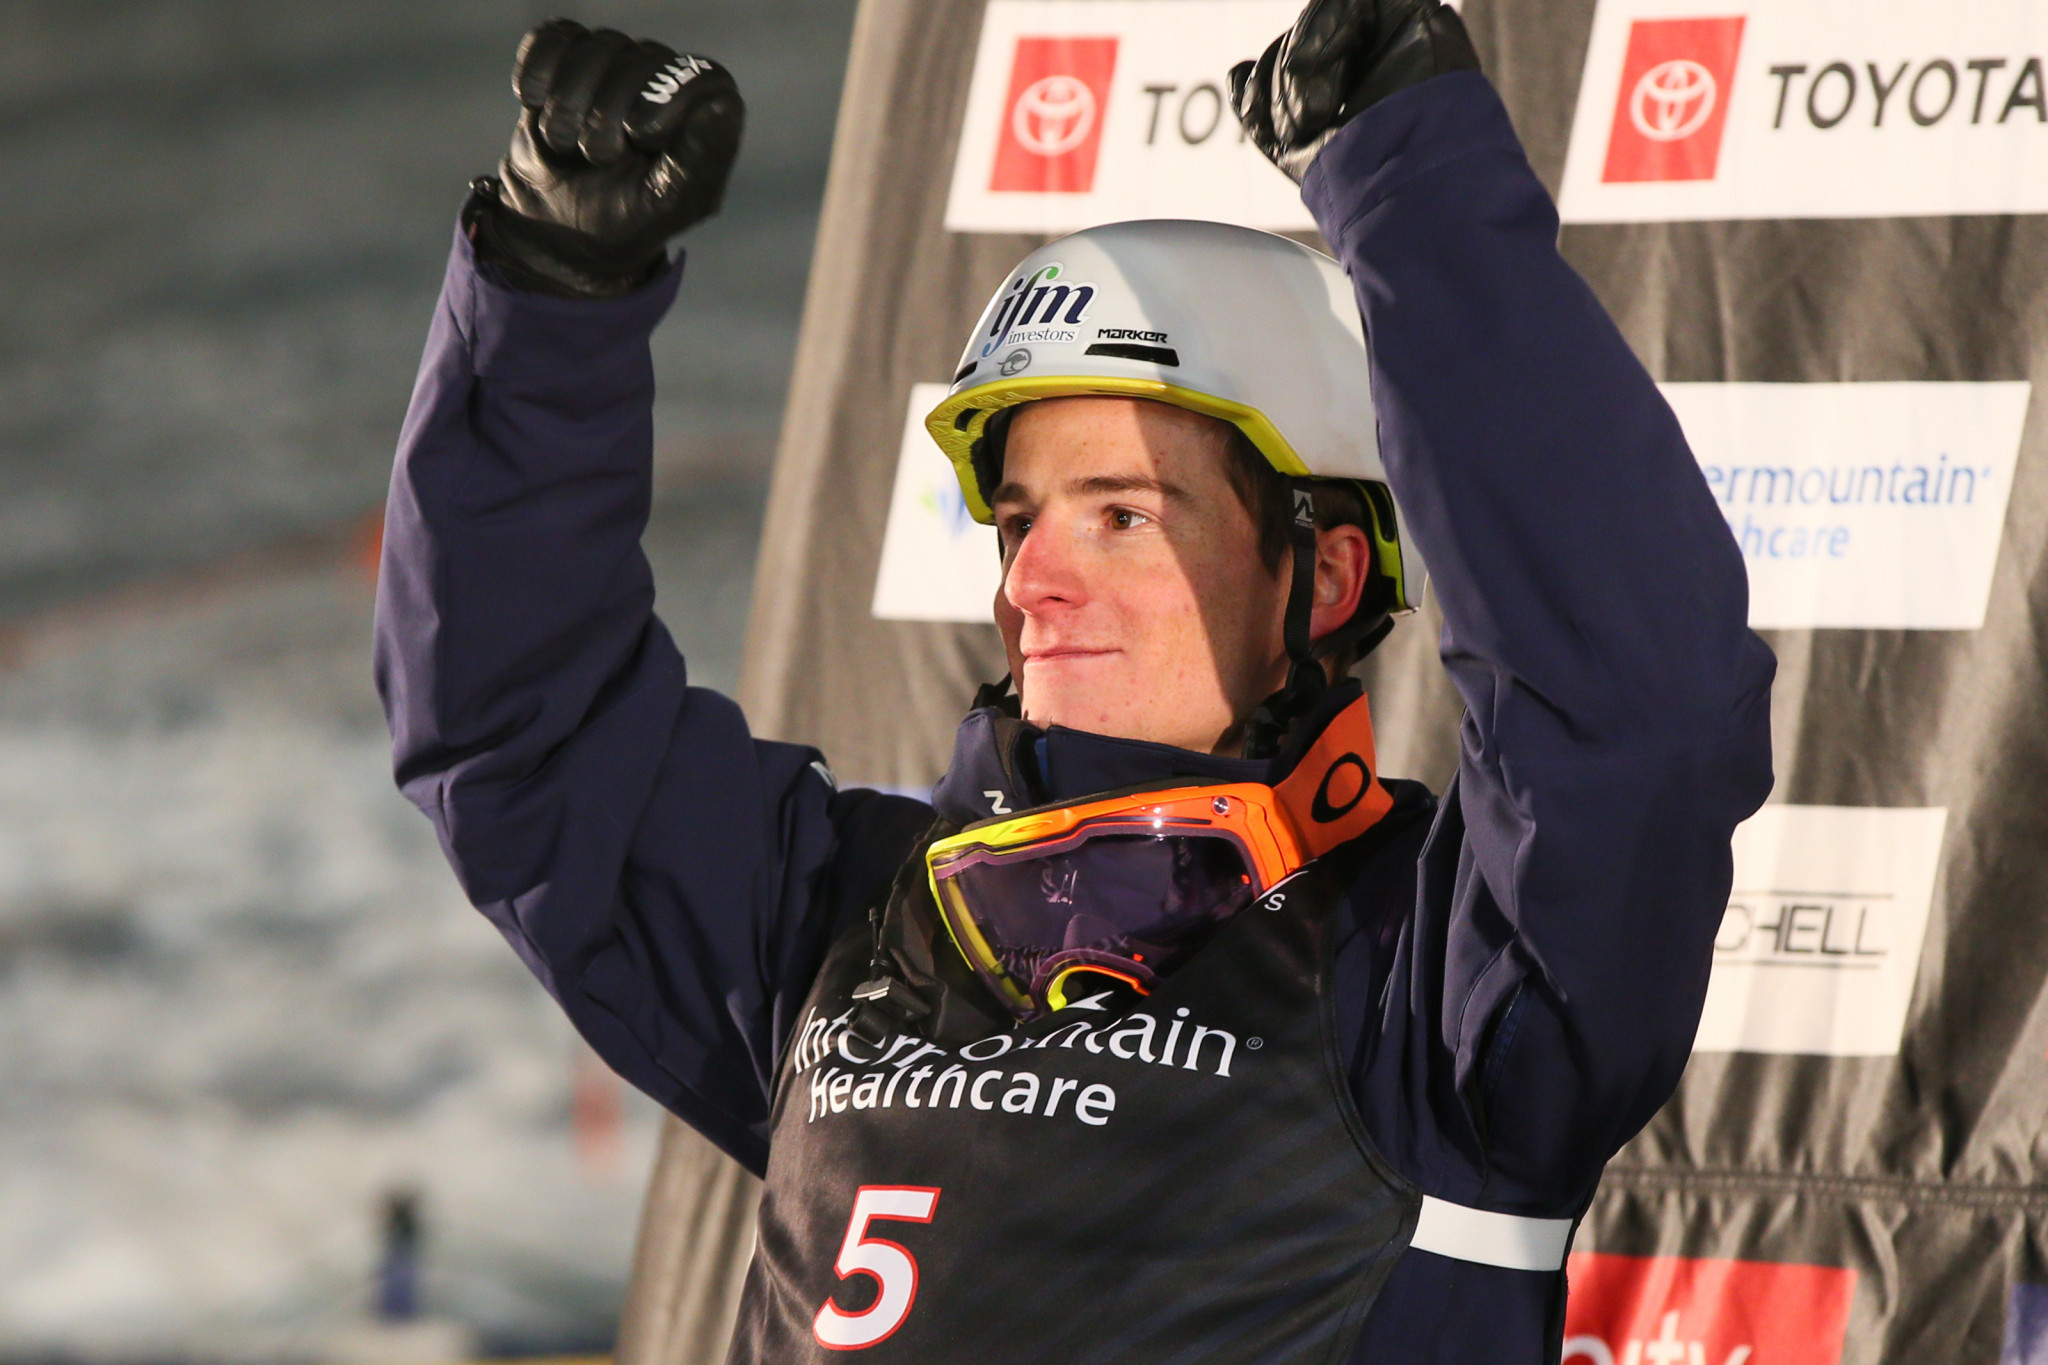 Graham wins crystal globe after cancellation of final FIS Moguls World Cup event